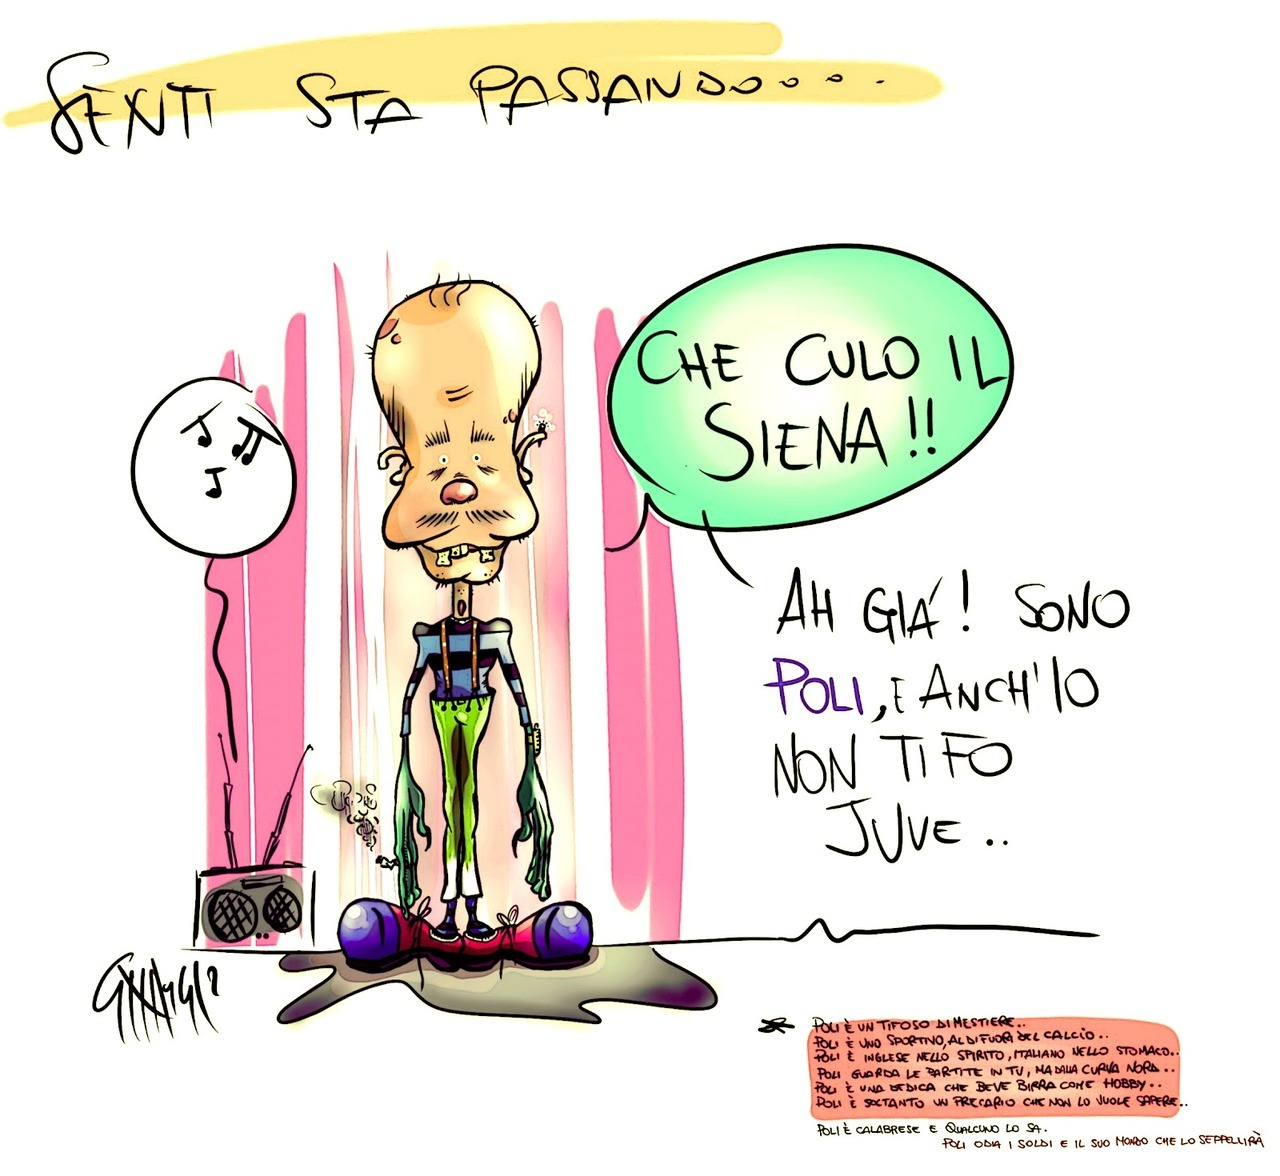 Poli l'interista fegatato